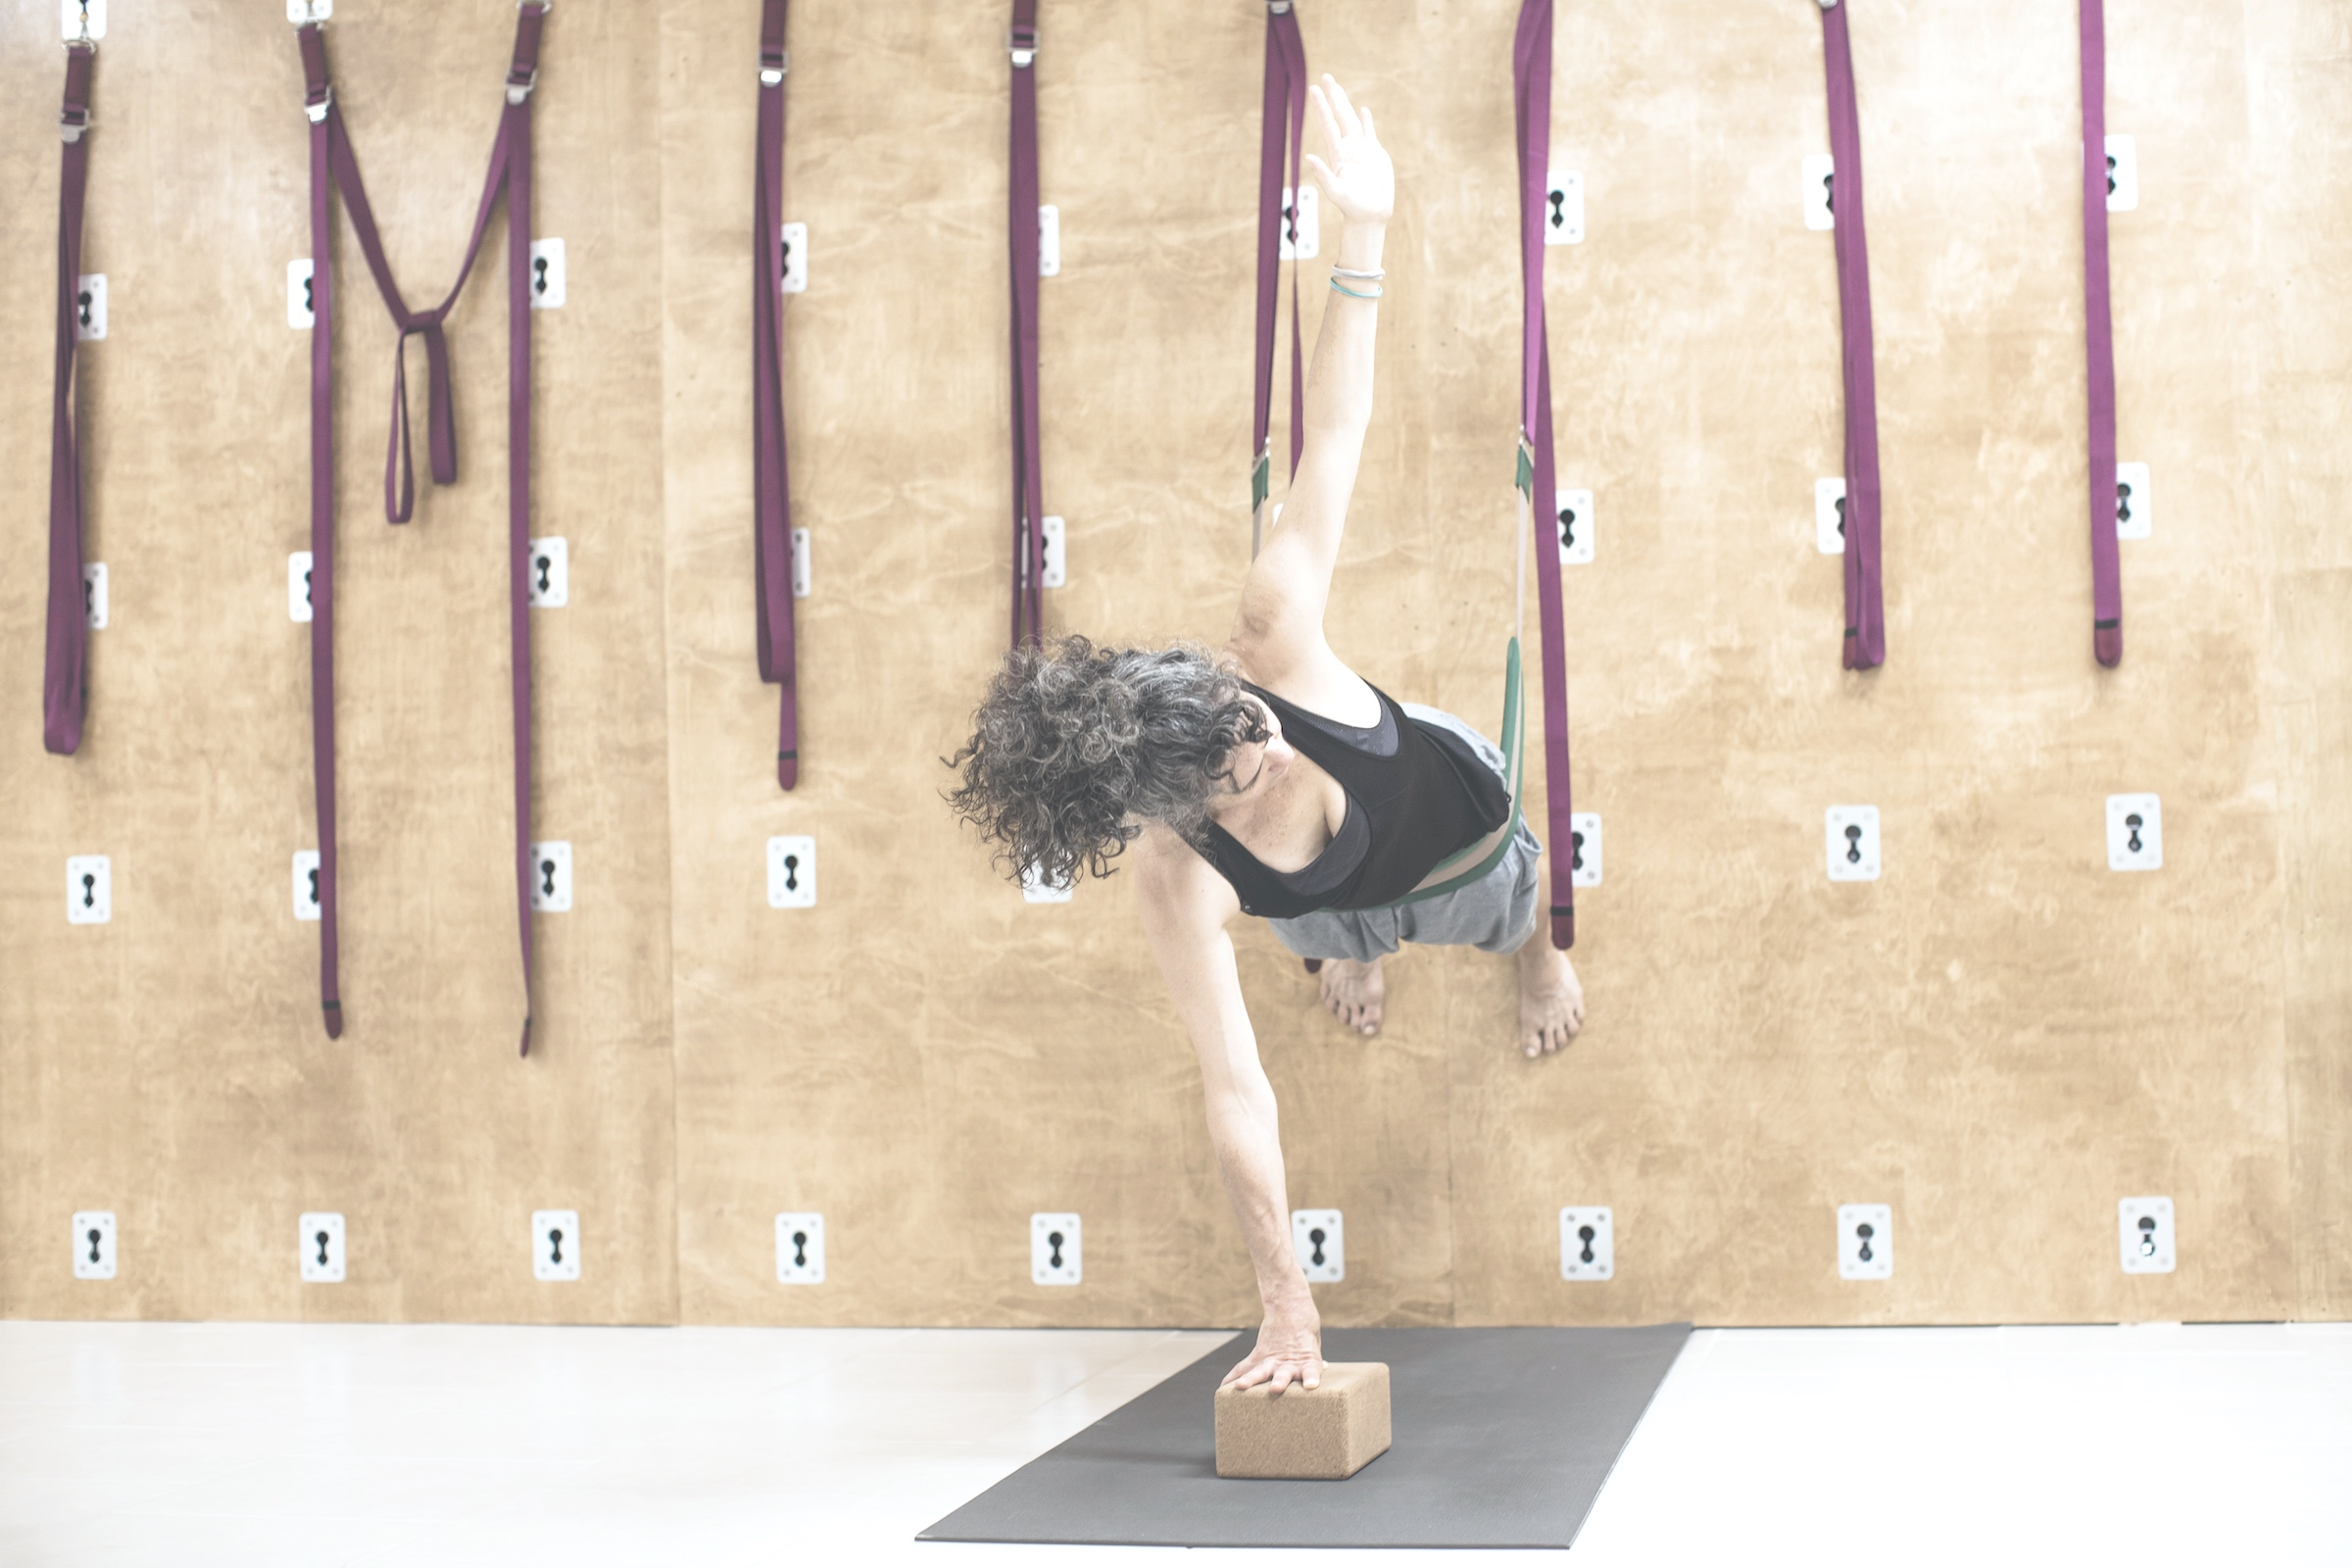 Wall Yoga  The wall rope system is used as the ultimate prop to enhance asana by providing a deep opening in the body. Students learn how the body aligns in postures with the added support of wall straps. We recommend some experience with yoga to feel at ease during the Wall Yoga class.